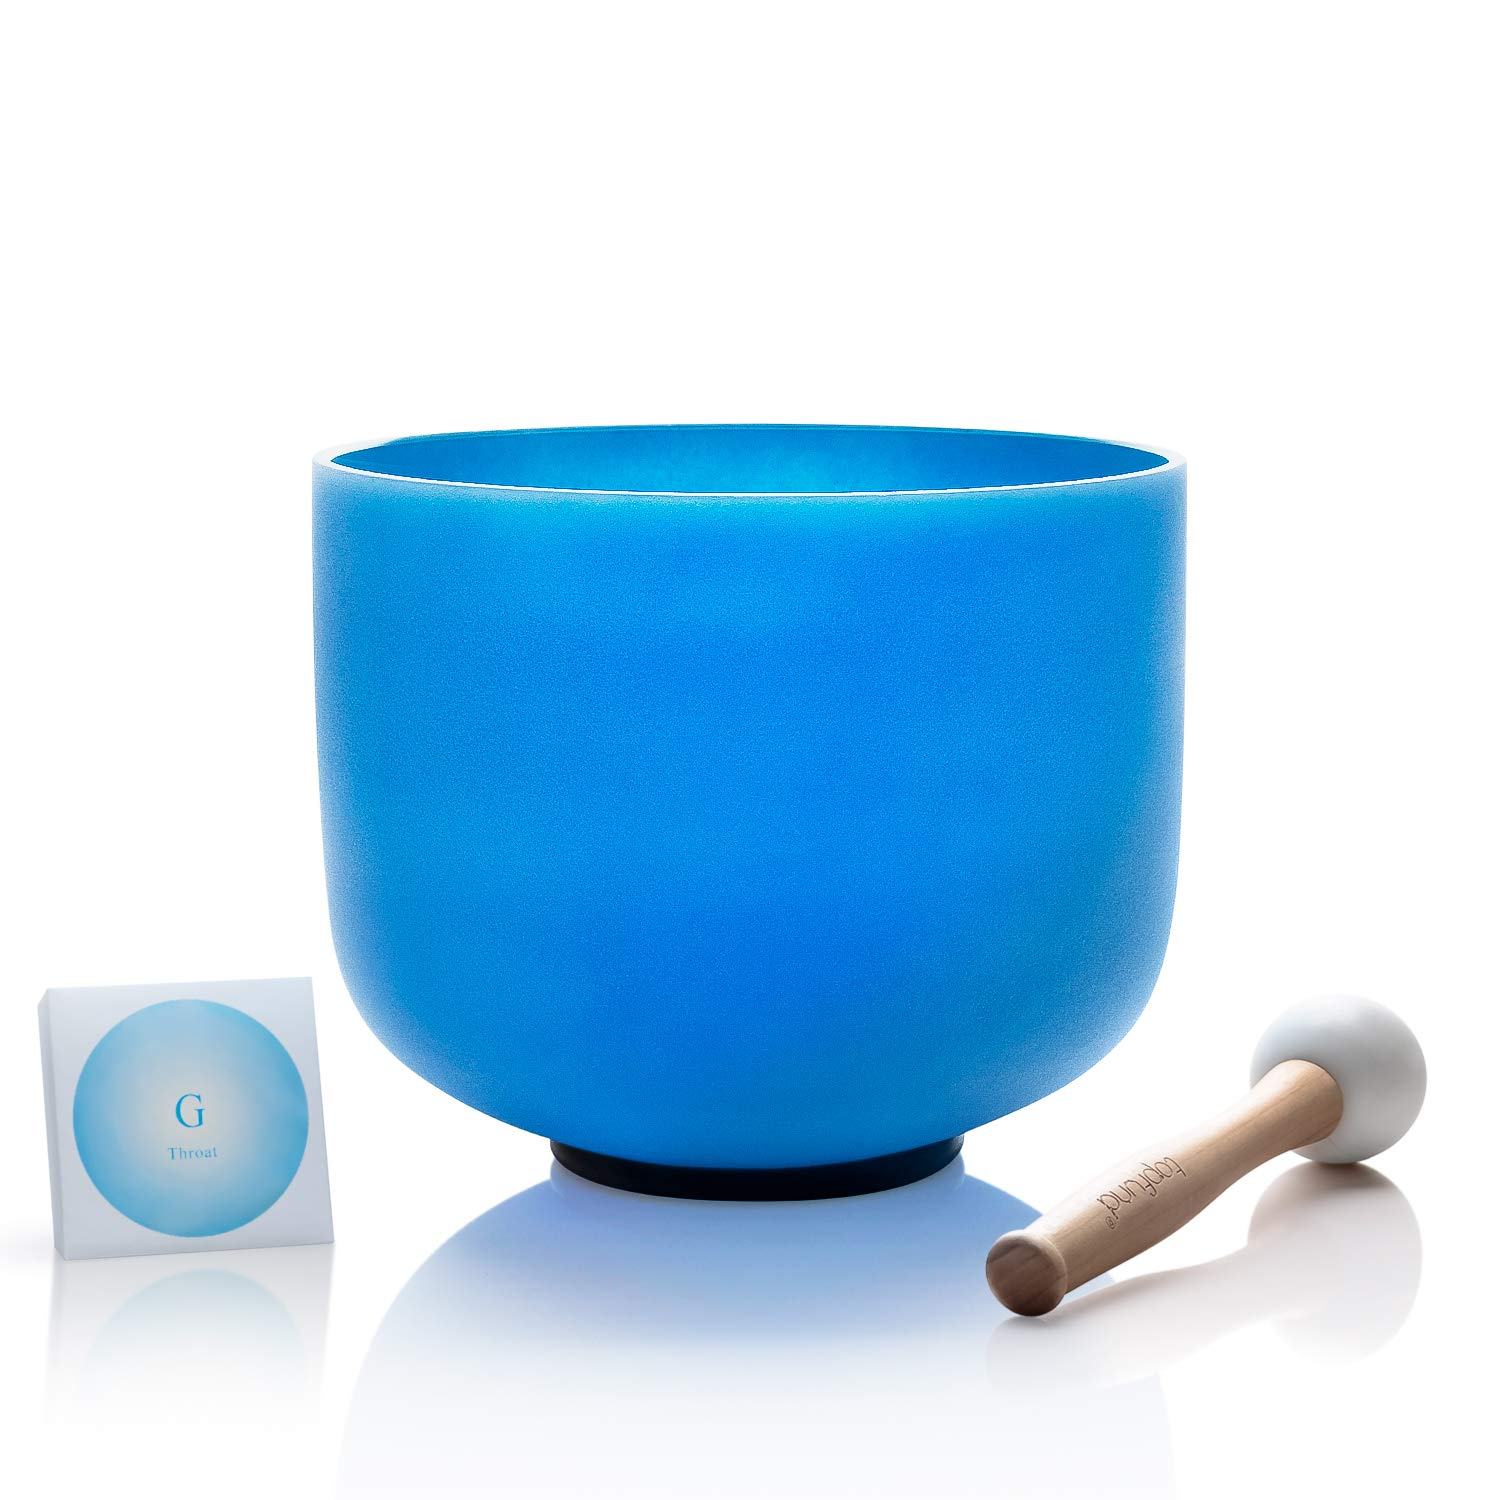 TOPFUND G Note Quartz Crystal Singing Bowl Throat Chakra Blue Color 8 inch O-ring and Rubber Mallet included by TOPFUND